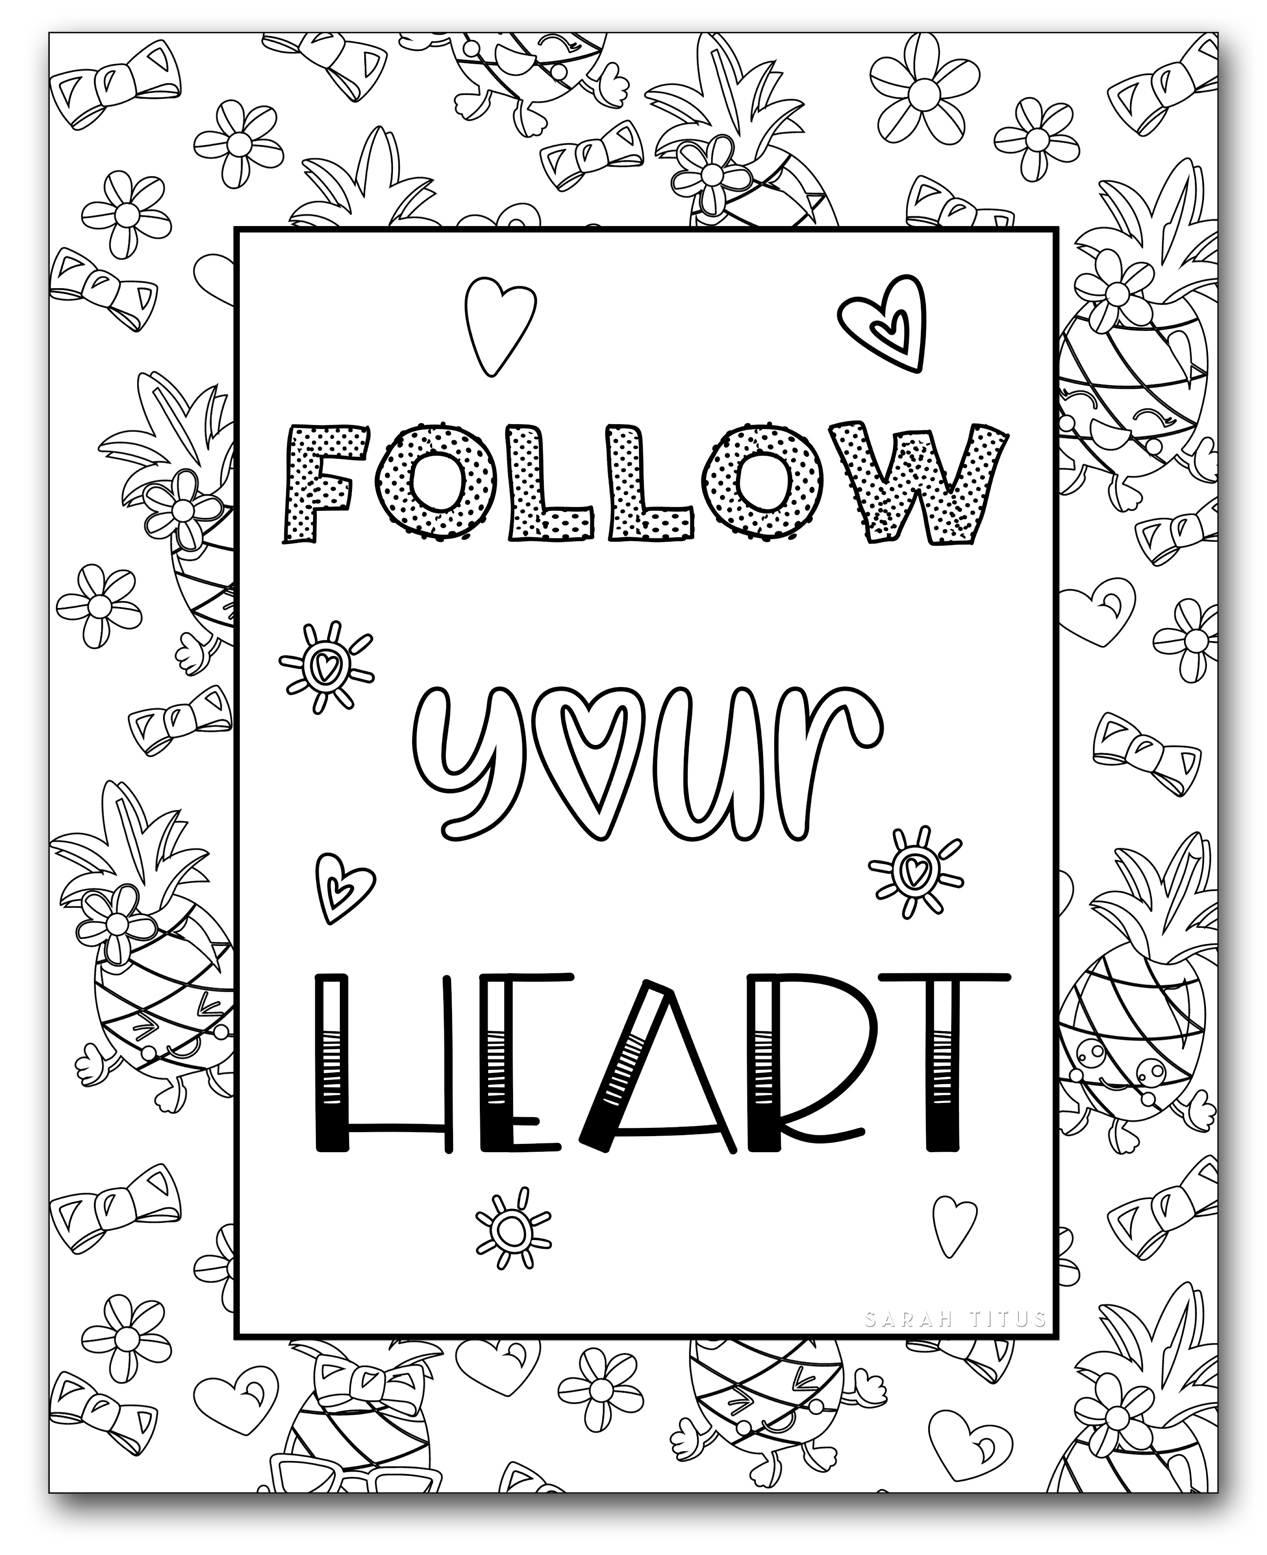 Printable Coloring Pages For Girls Printable Coloring Pages For Girls Sarah Titus